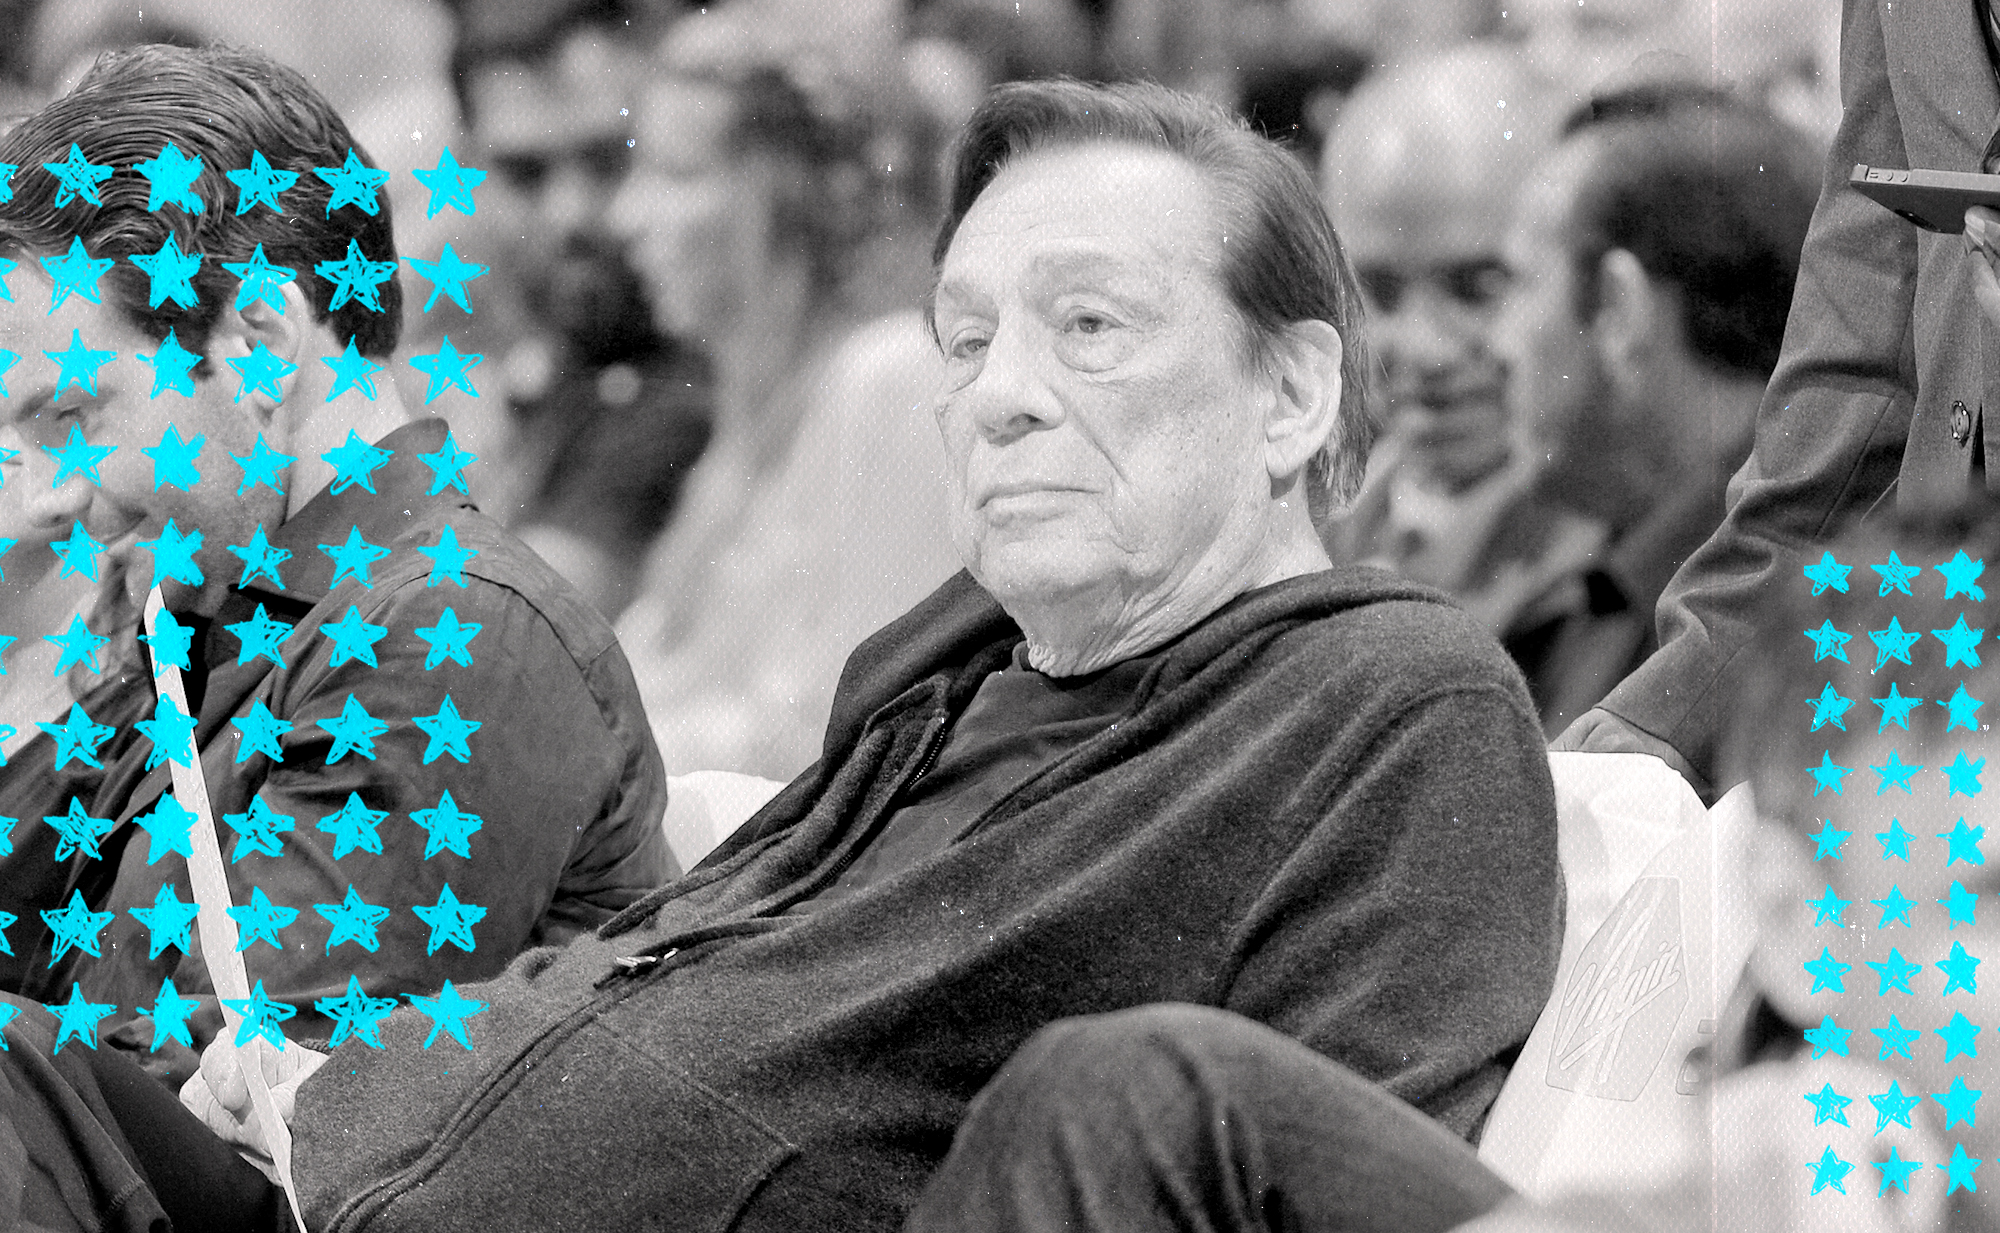 What if Donald Sterling survived?